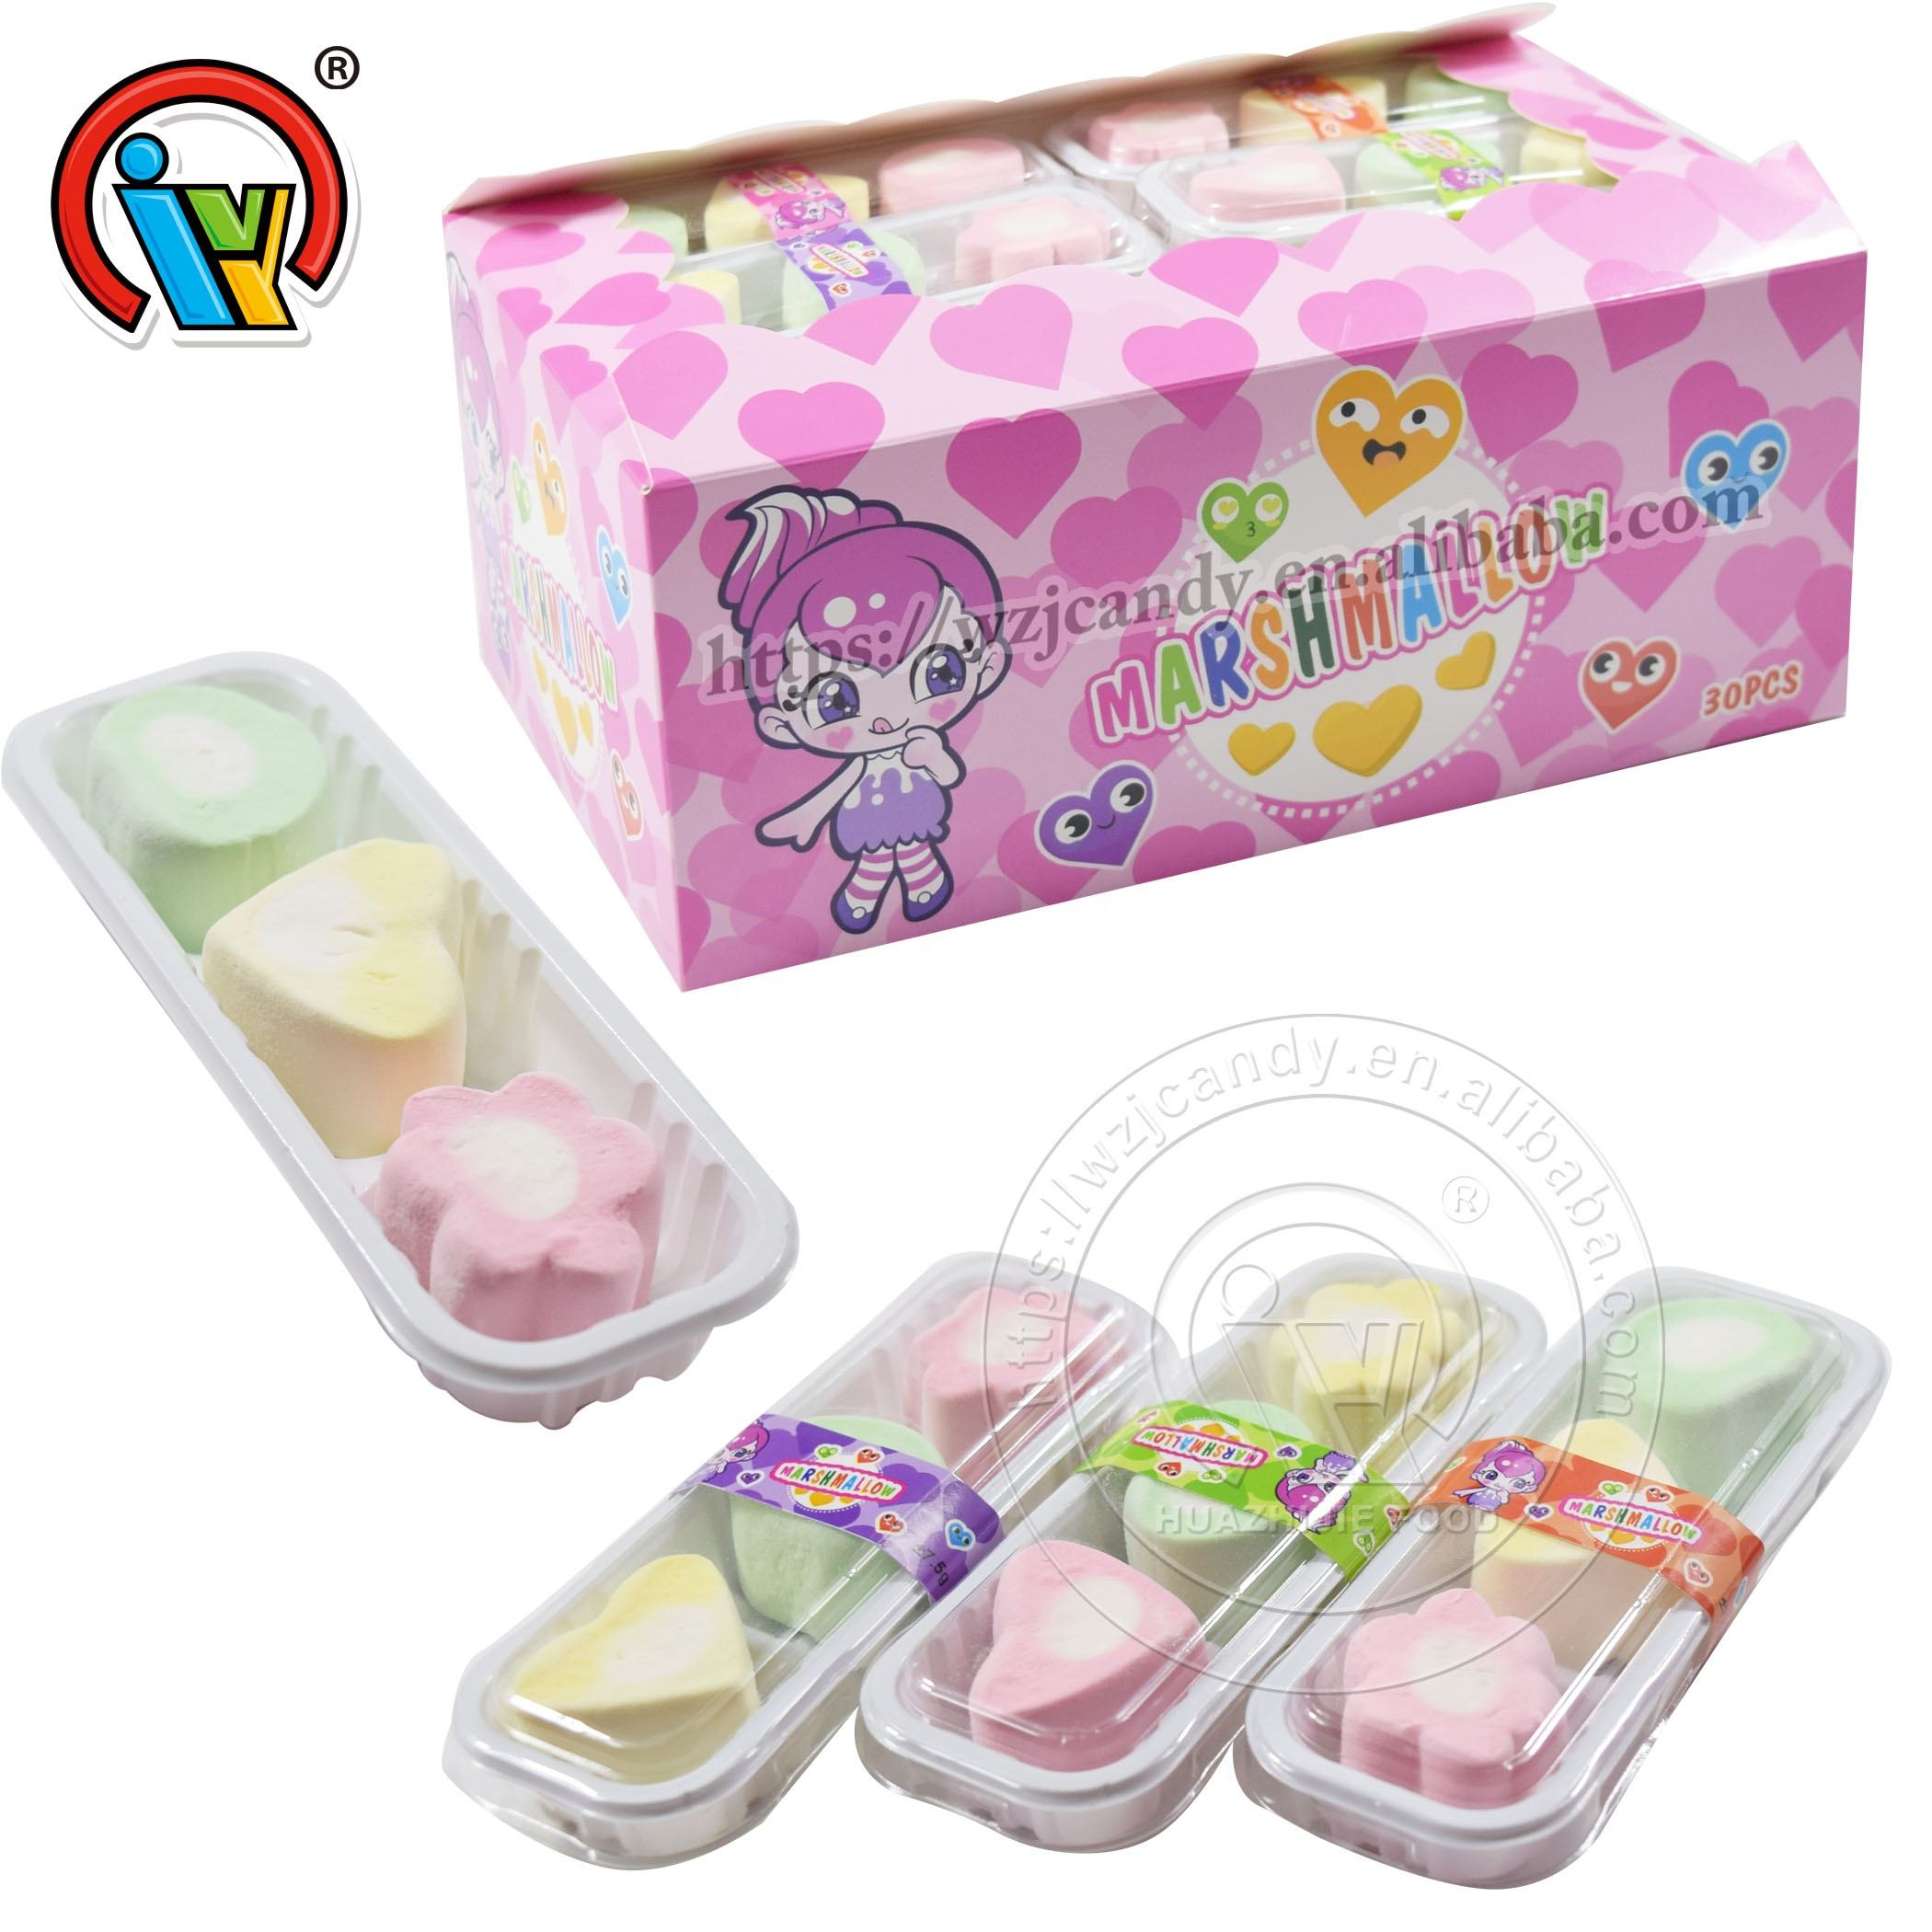 3 in 1 different shape cotton candy marshmallow candy for kids